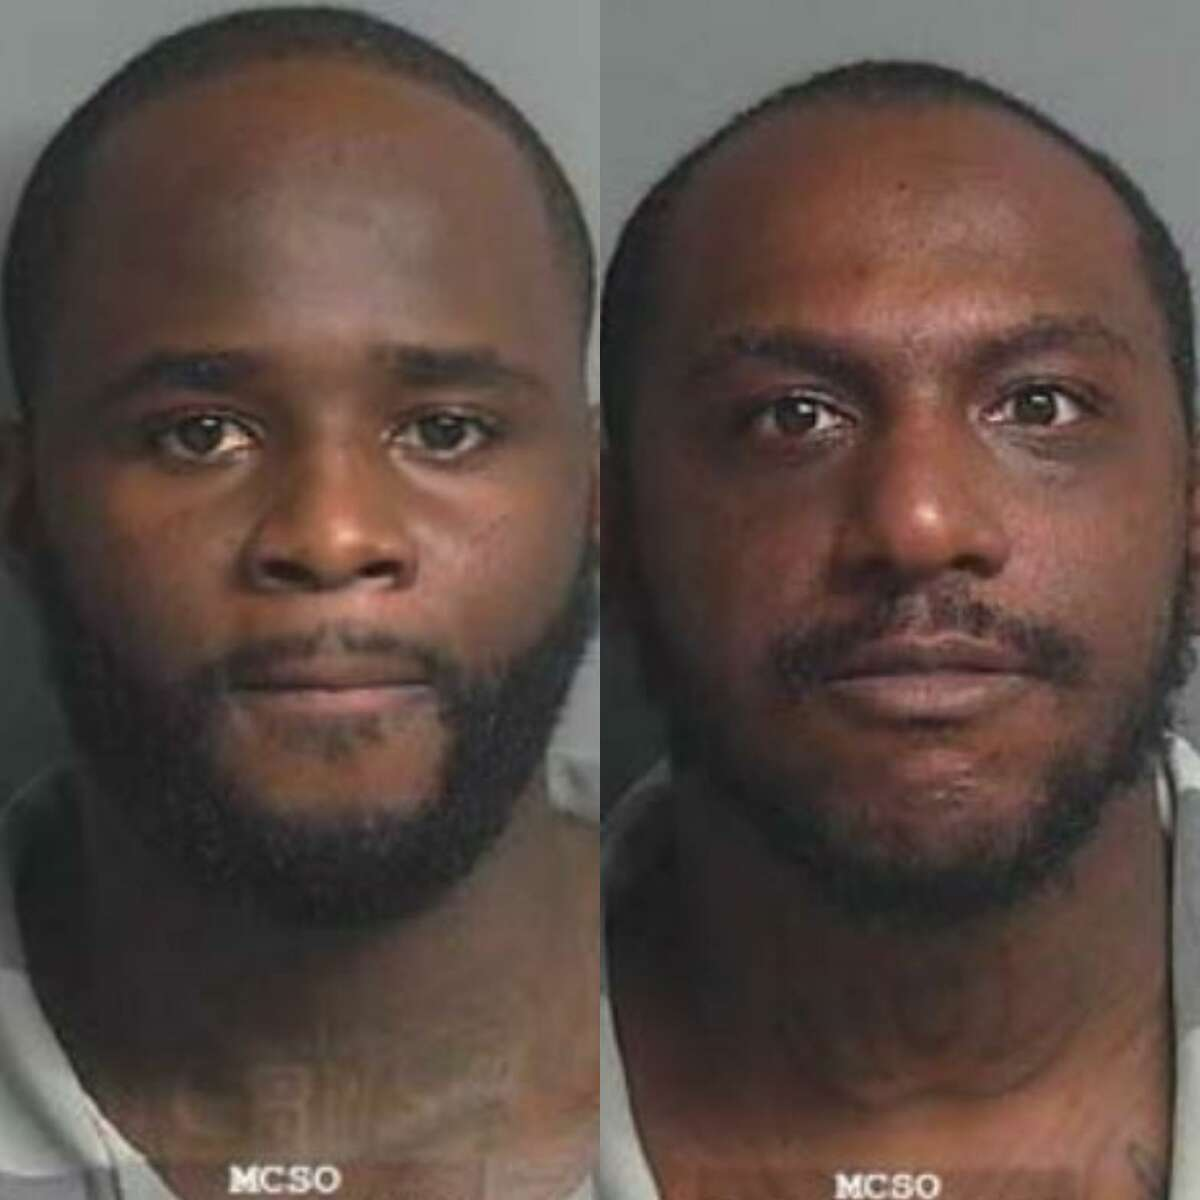 Ja Michael Cruse, 27, of Houston, and Khoury Ronaldo Thomas, 29, of Humble, are facing burglary of vehicle and evading arrest charges, both Class A misdemeanors.